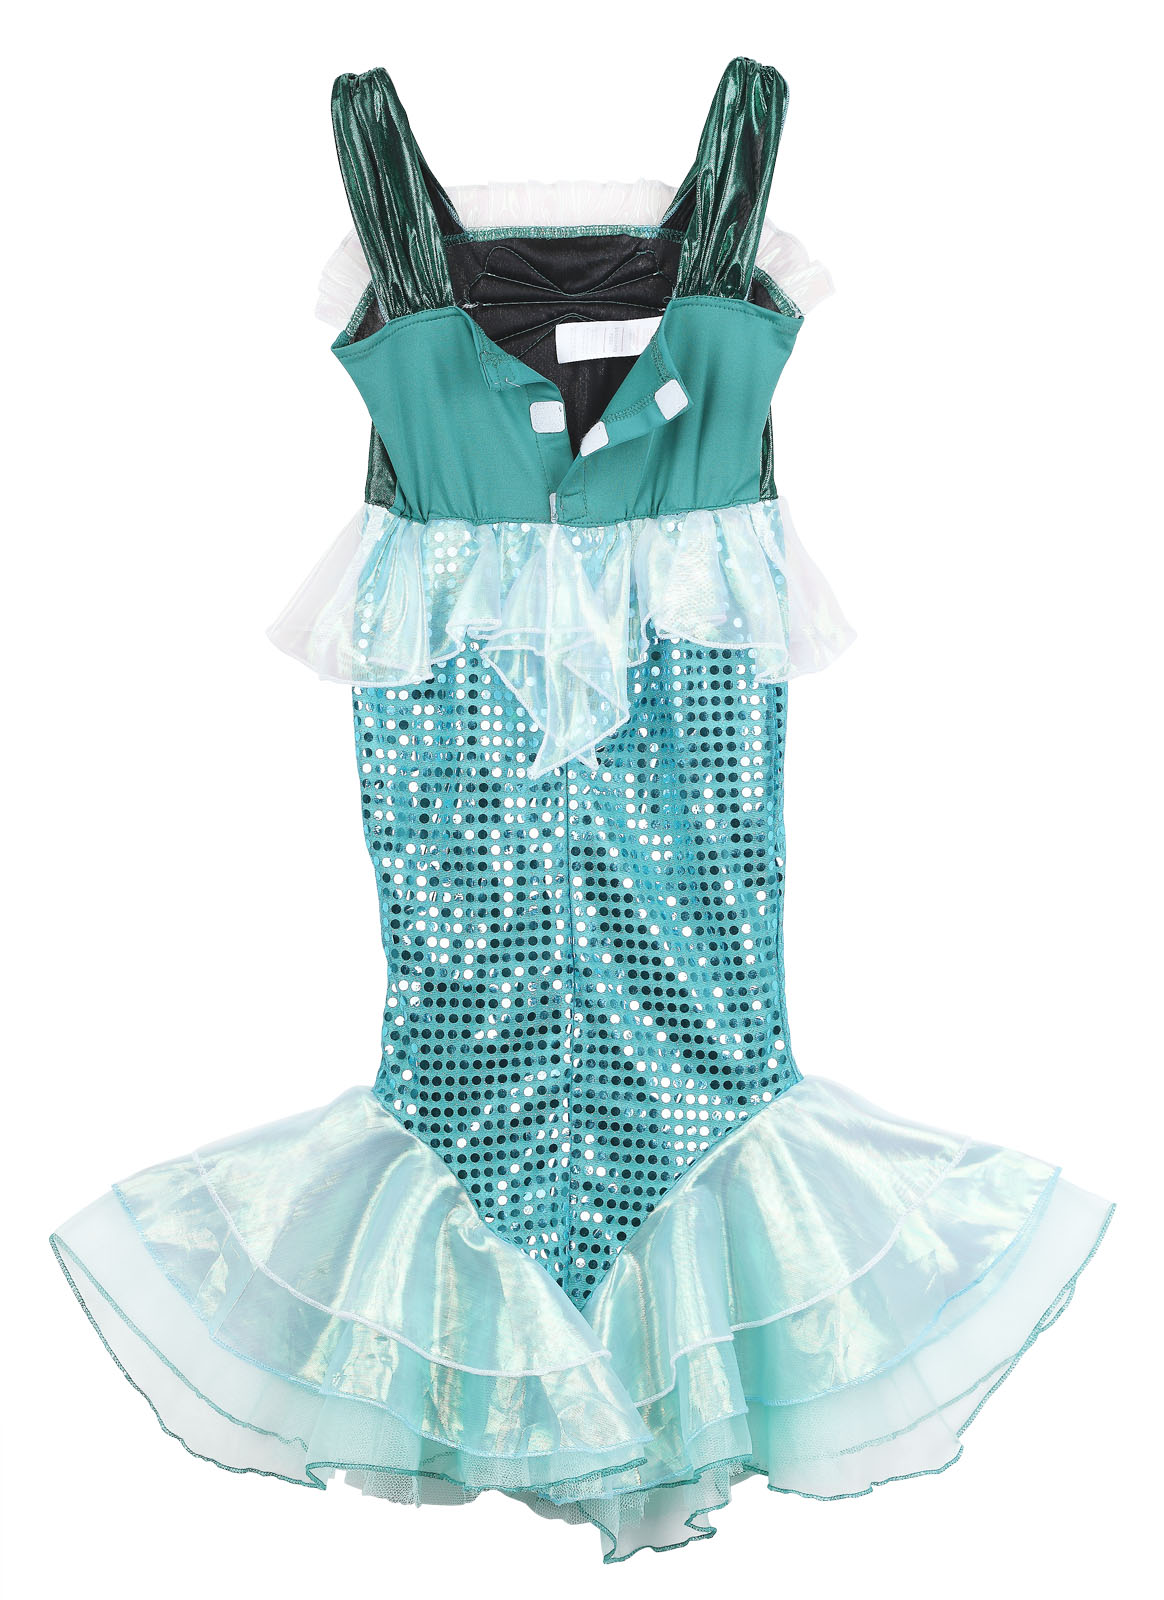 girls little mermaid costume turquoise sequins dress